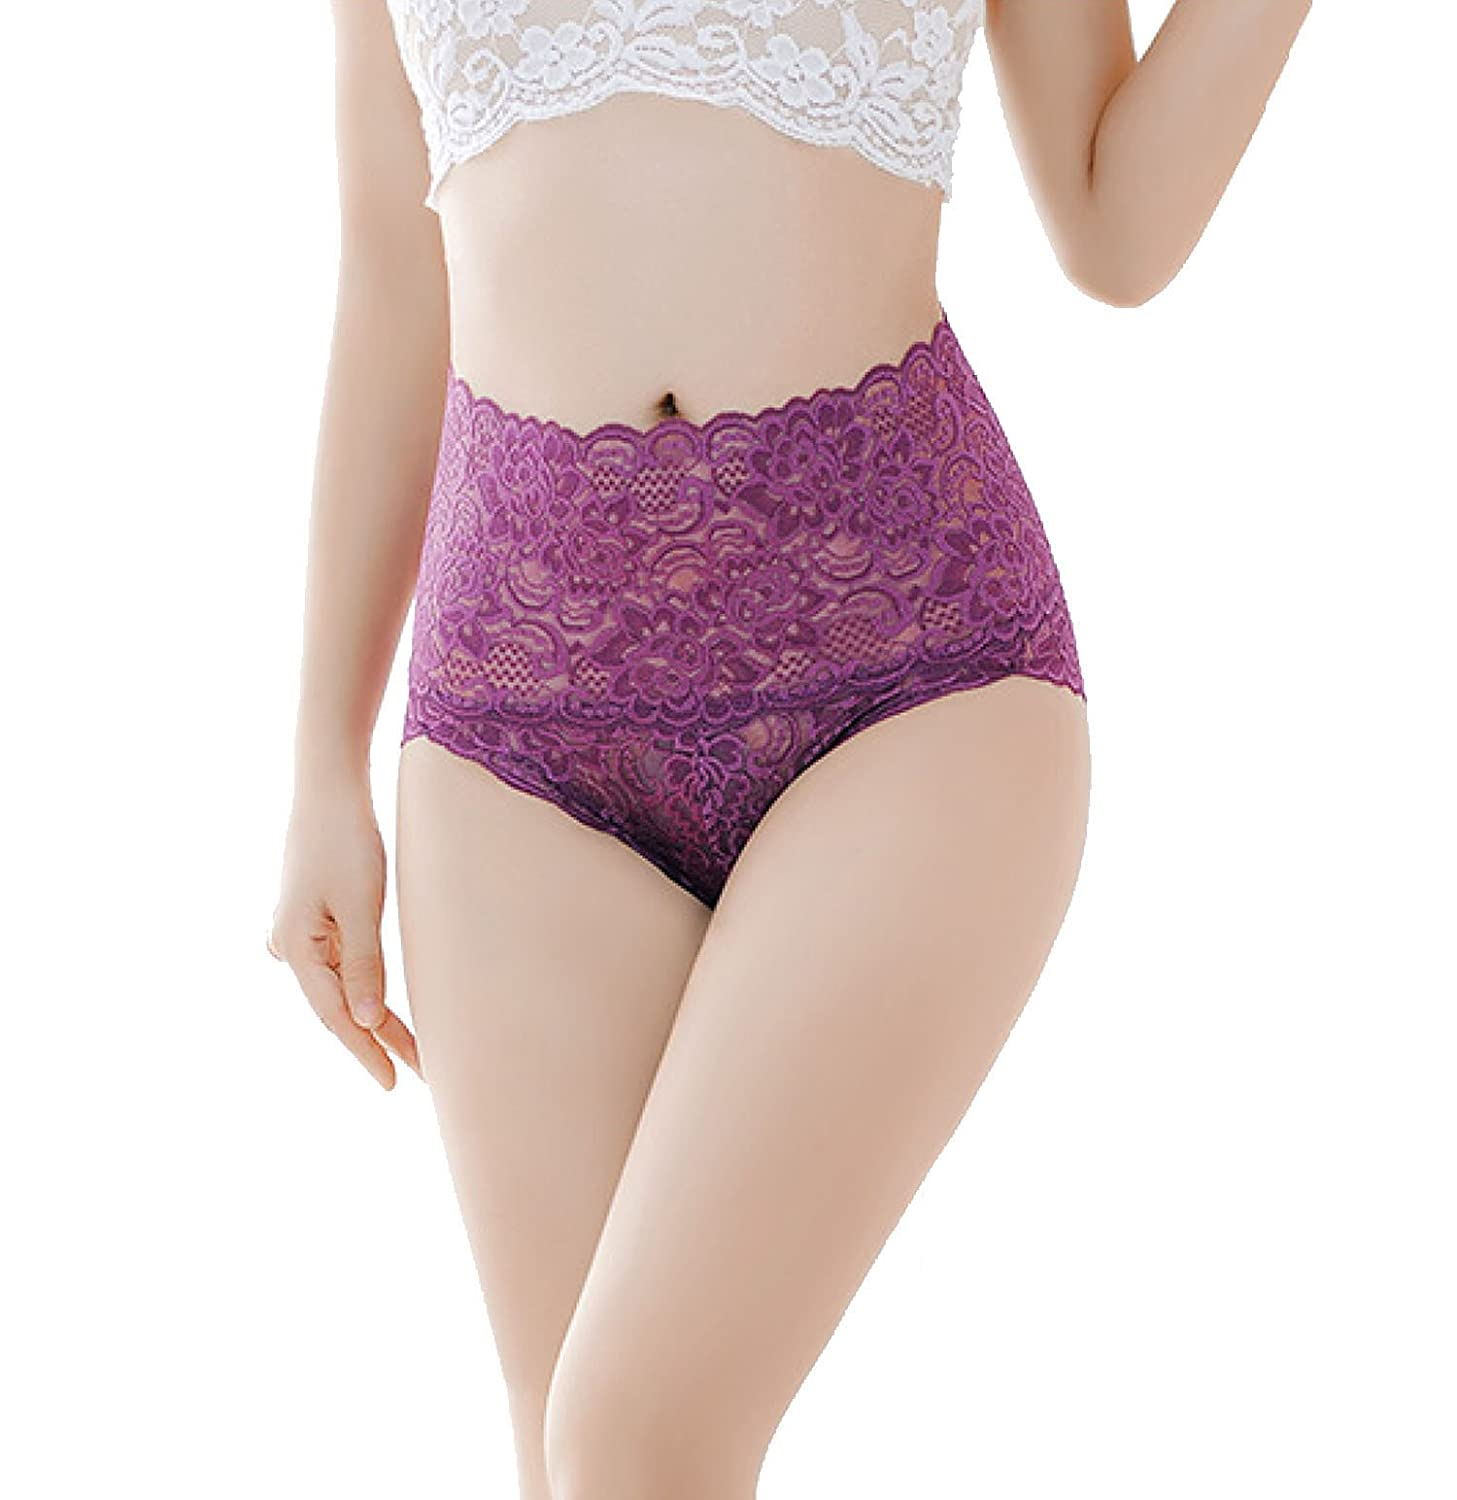 cool nik Women's High Waist Lace Panties Comfortable Underwear with High Elastic